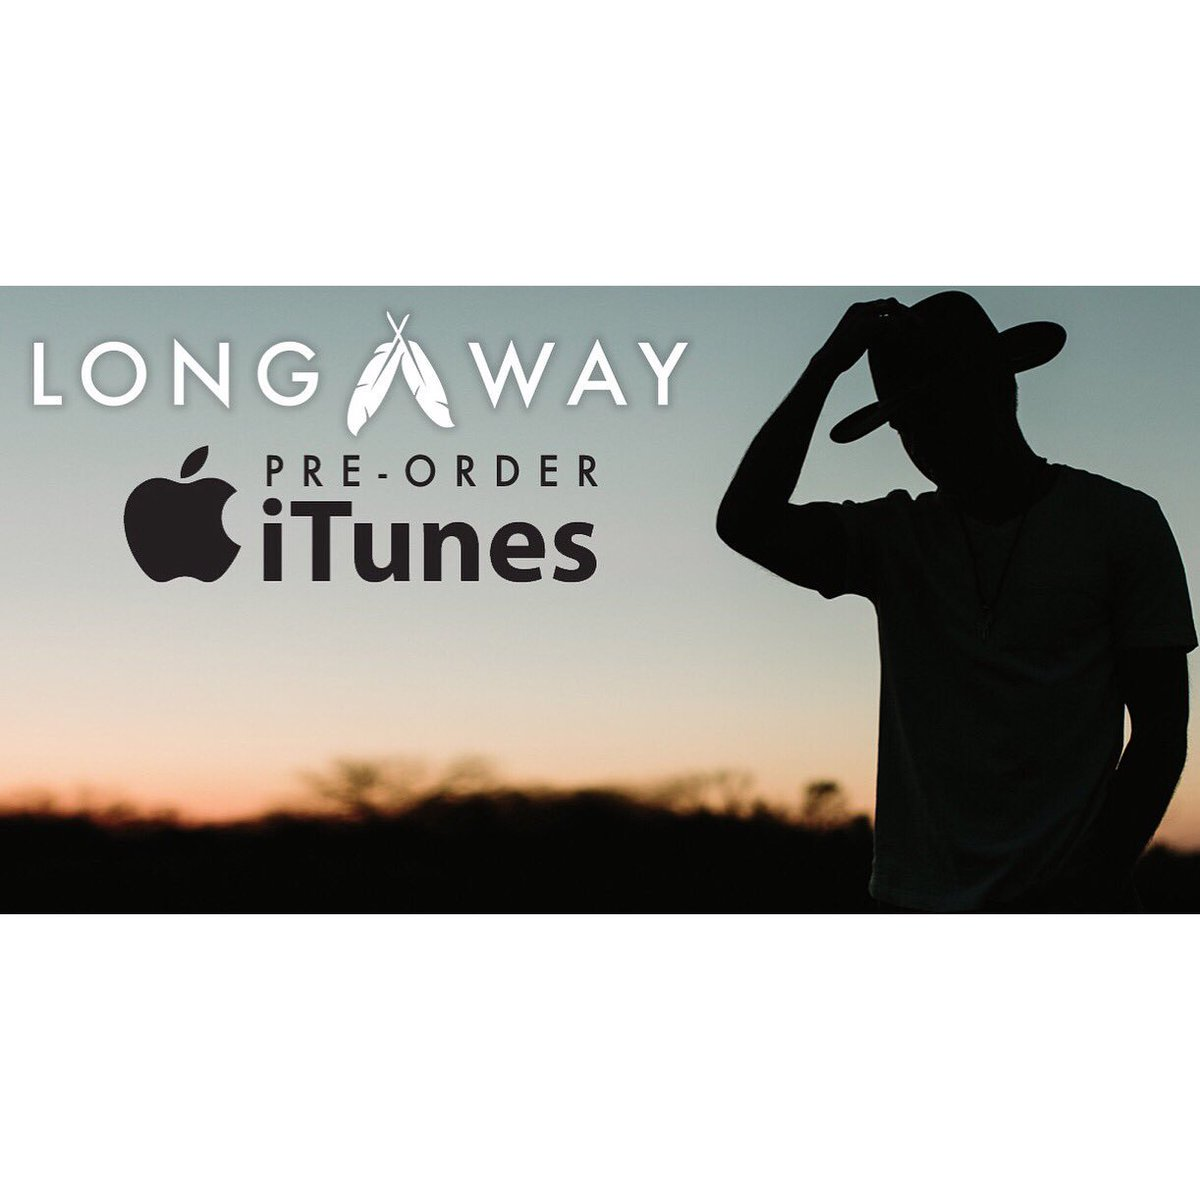 5 DAYS!  Wrote hundreds. Recorded the best.  Available for pre-order @itunes :  https://t.co/qcbP7I85OB  #LongWayEP https://t.co/6z3E8fRPm3